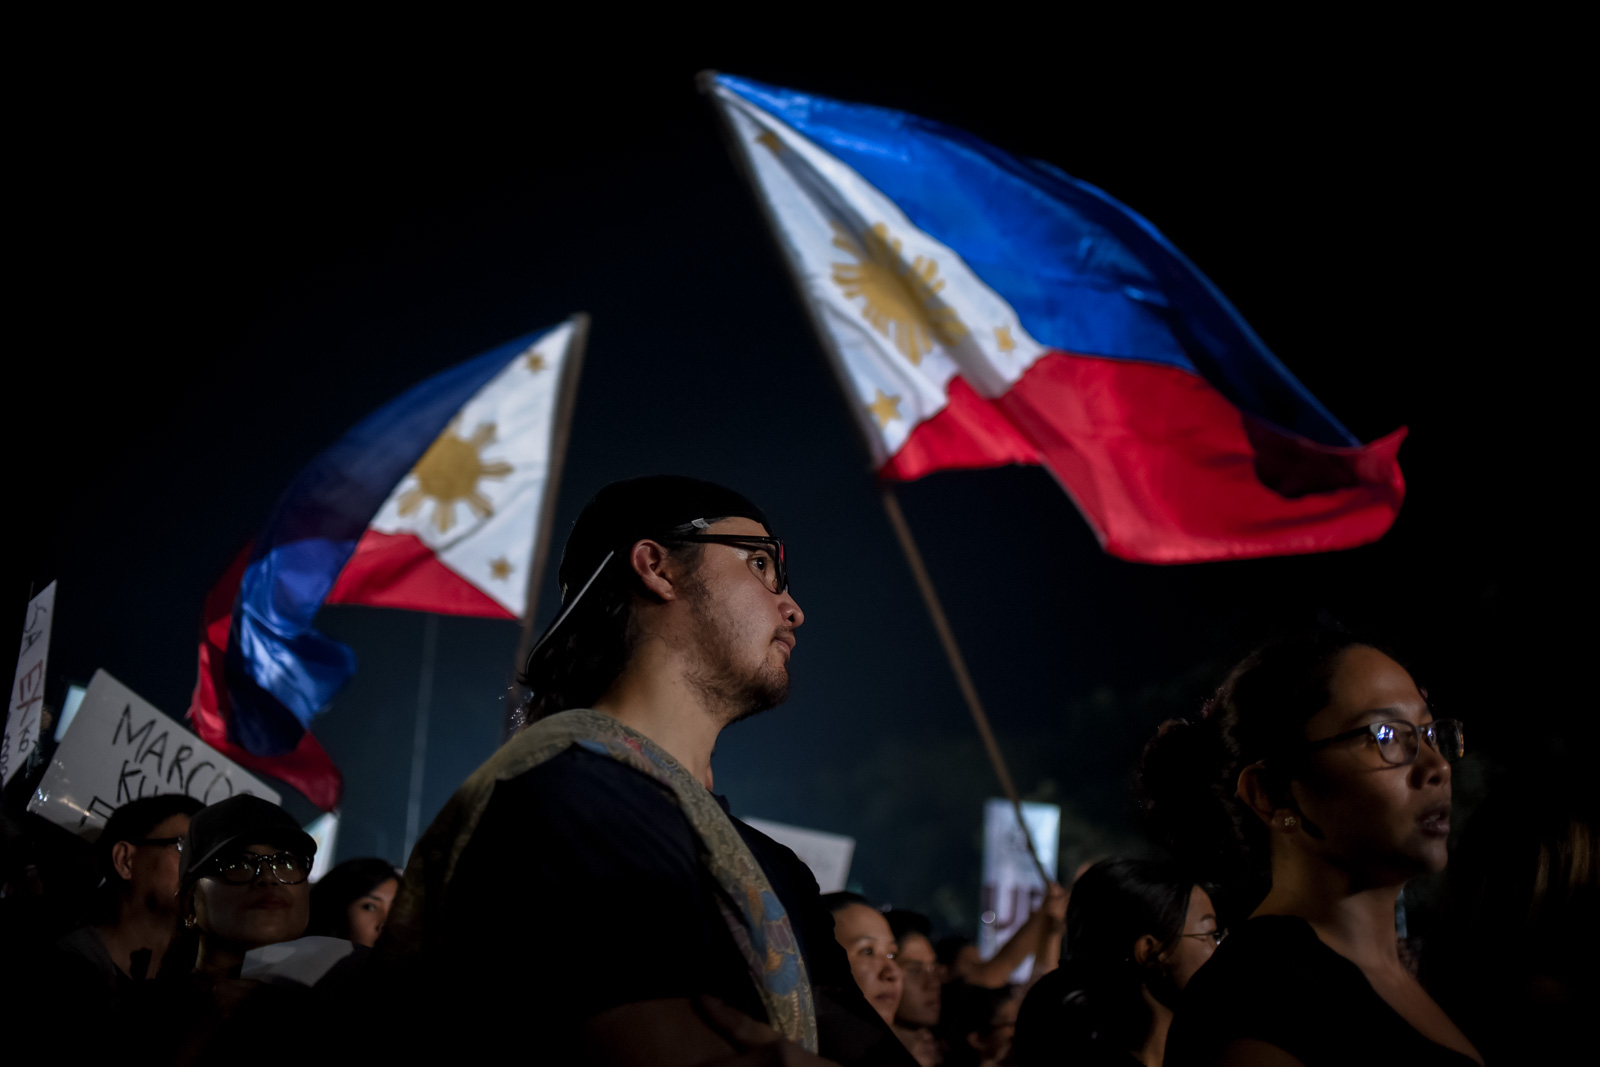 Thousands of Filipinos gathered at the People Power Monument along EDSA voicing their dissent on Ferdinand Marcos' surprise burial at the Libingan ng mga Bayani, November 30, Quezon City, Philippines.